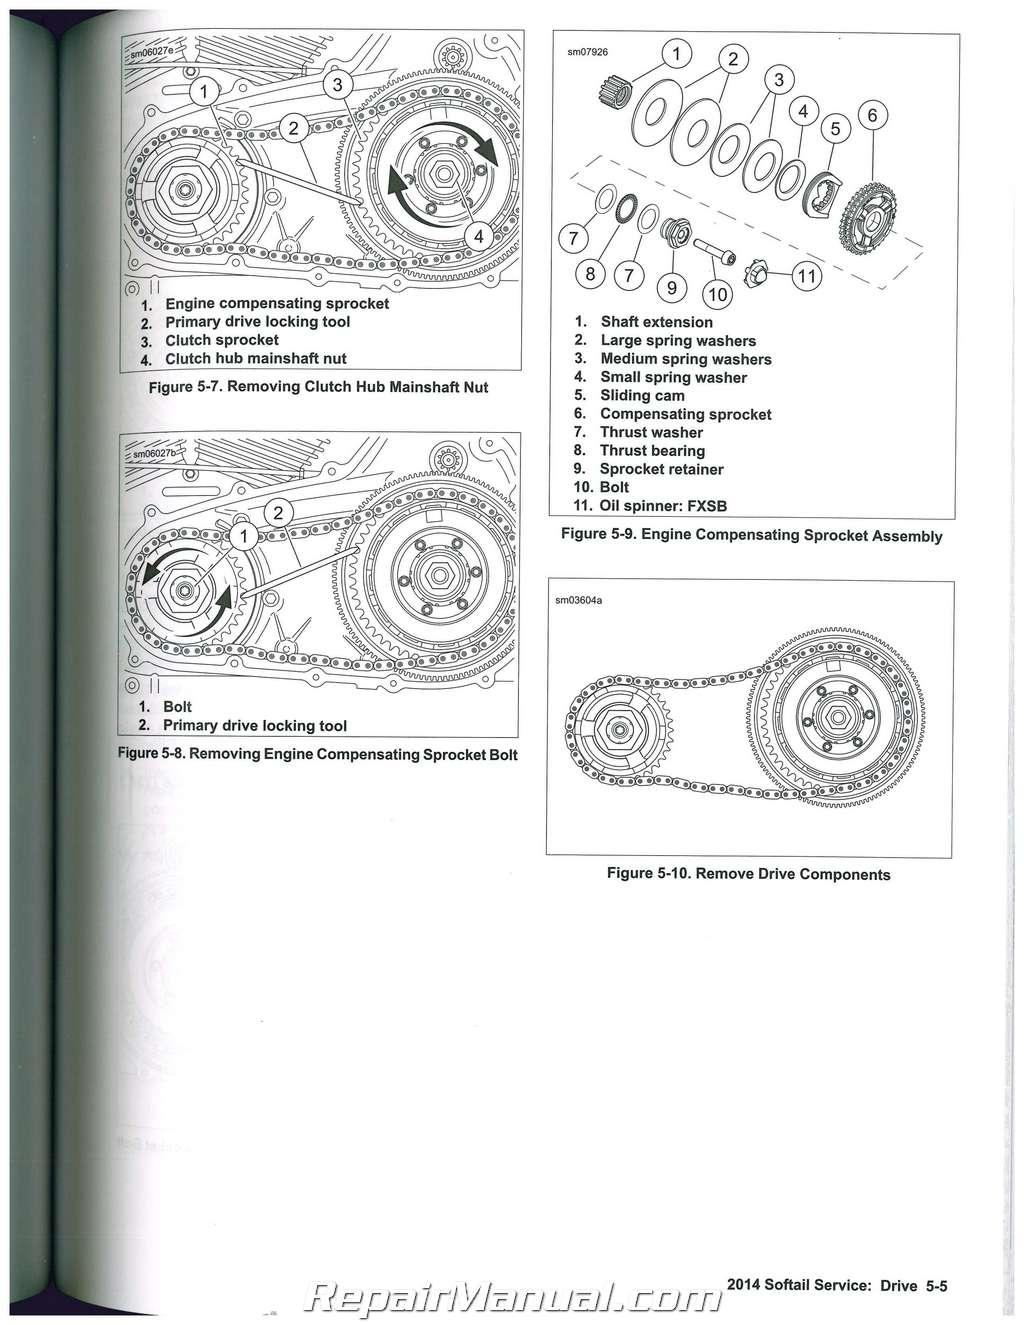 2014 Harley Davidson Softail Motorcycle Service Manual Twin Cam Engine Diagram Oil Line Routing